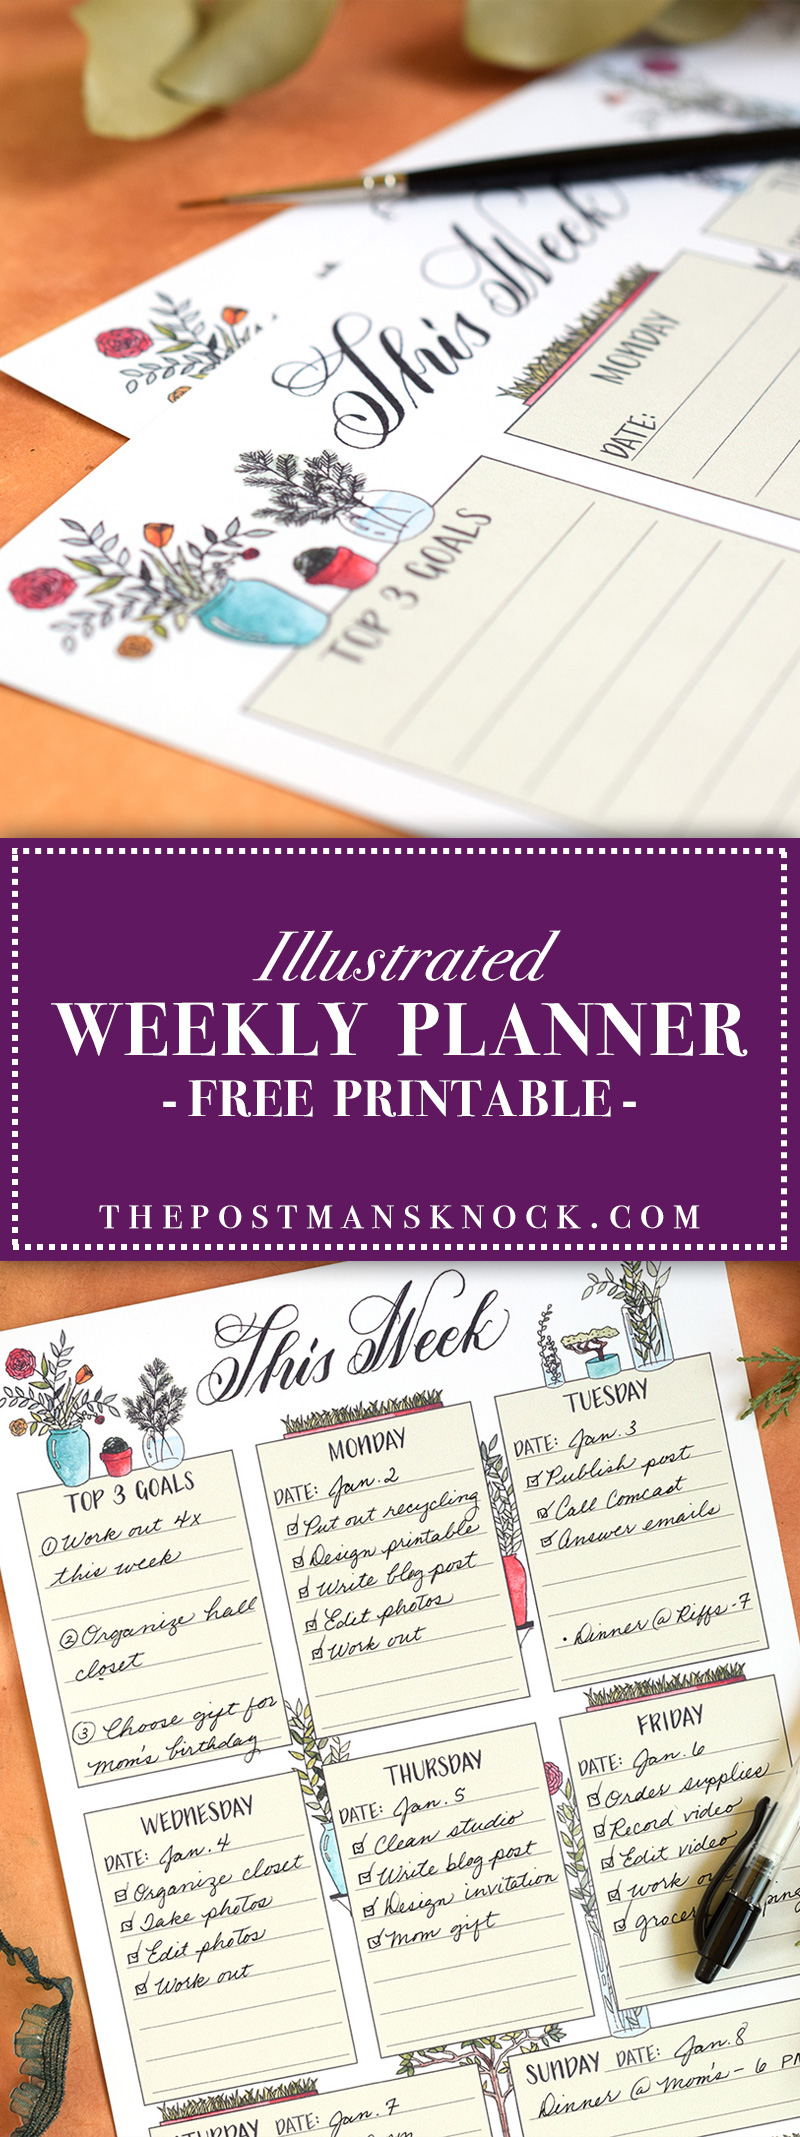 Free Printable Weekly Planner | The Postman's Knock